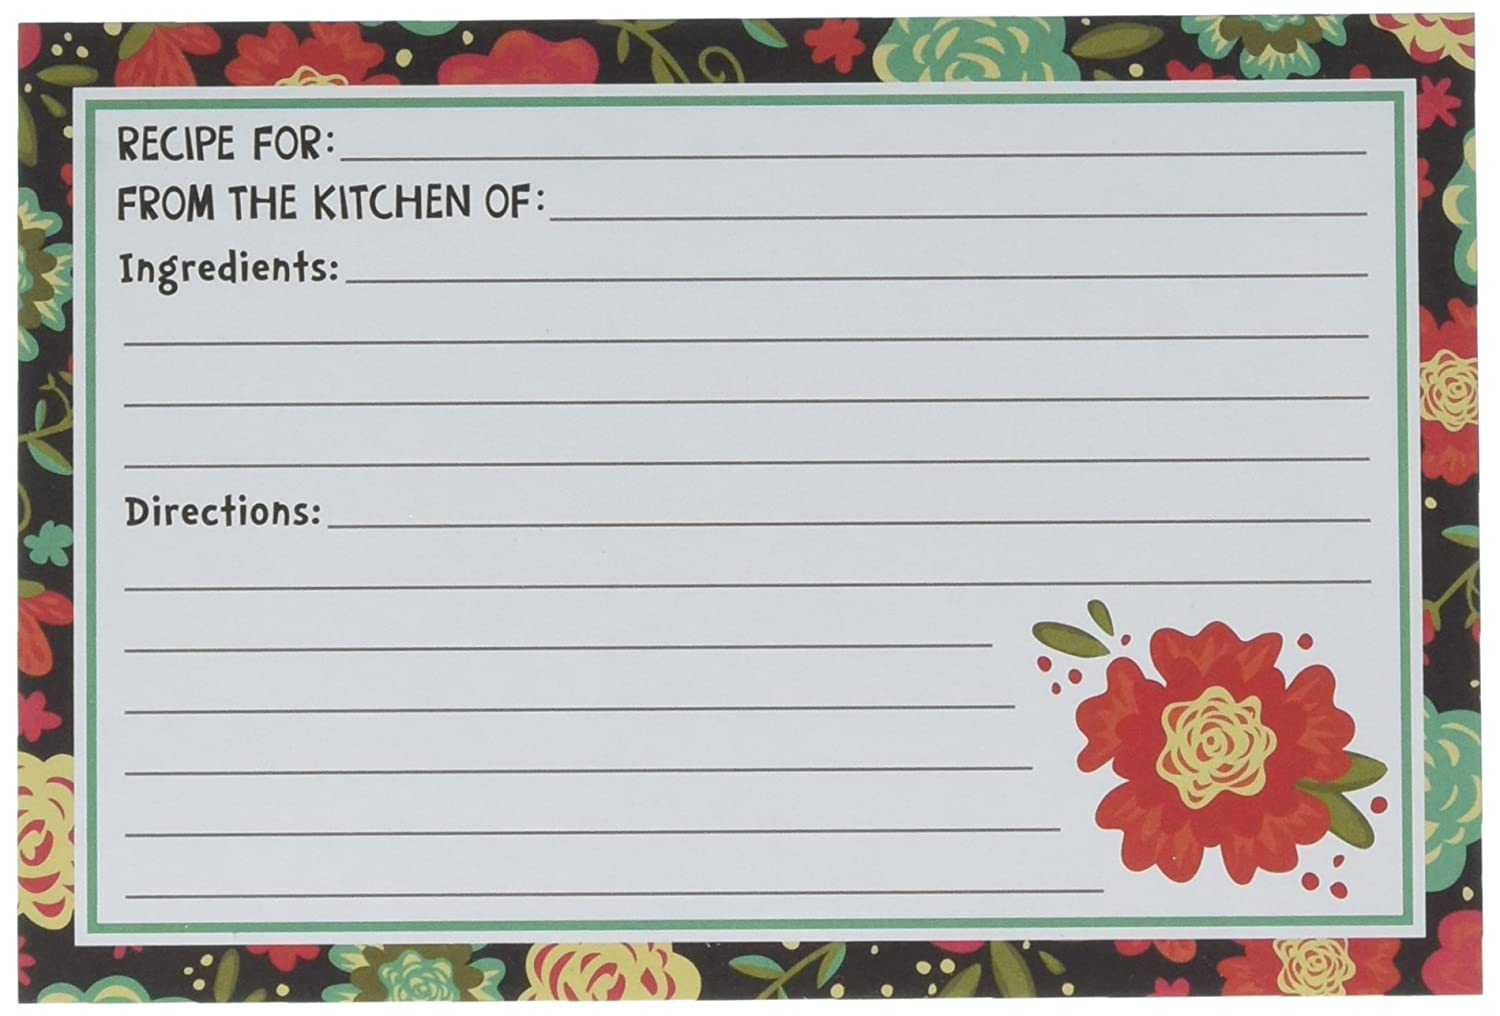 Darice My Family Recipes Recipe Cards - Happy Day - 40 count 1219-543